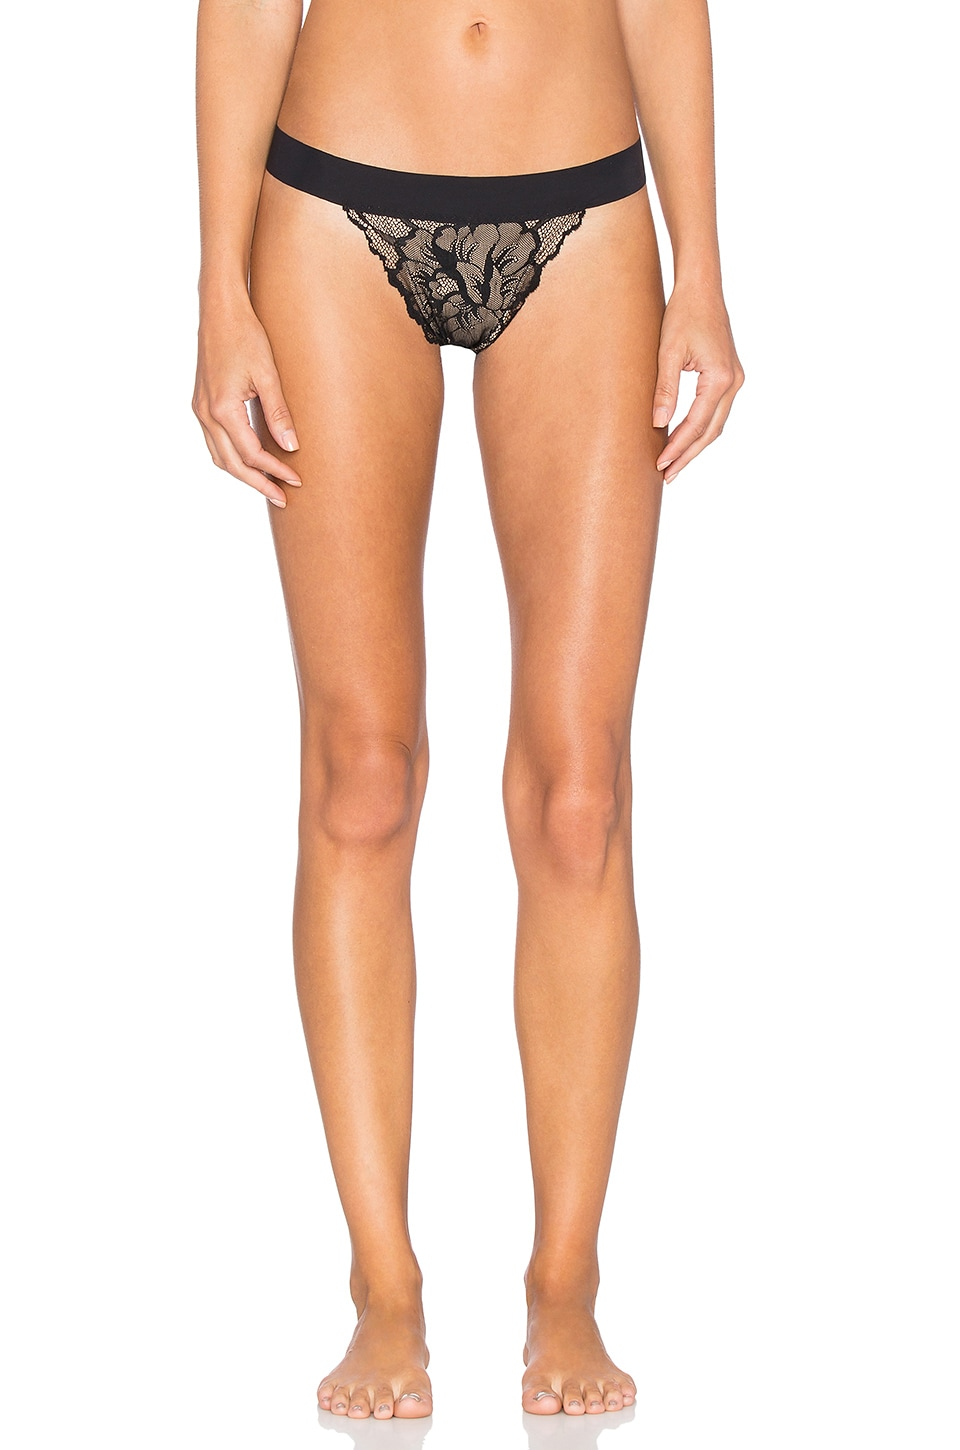 Commando Lust & Lace G-String in Black